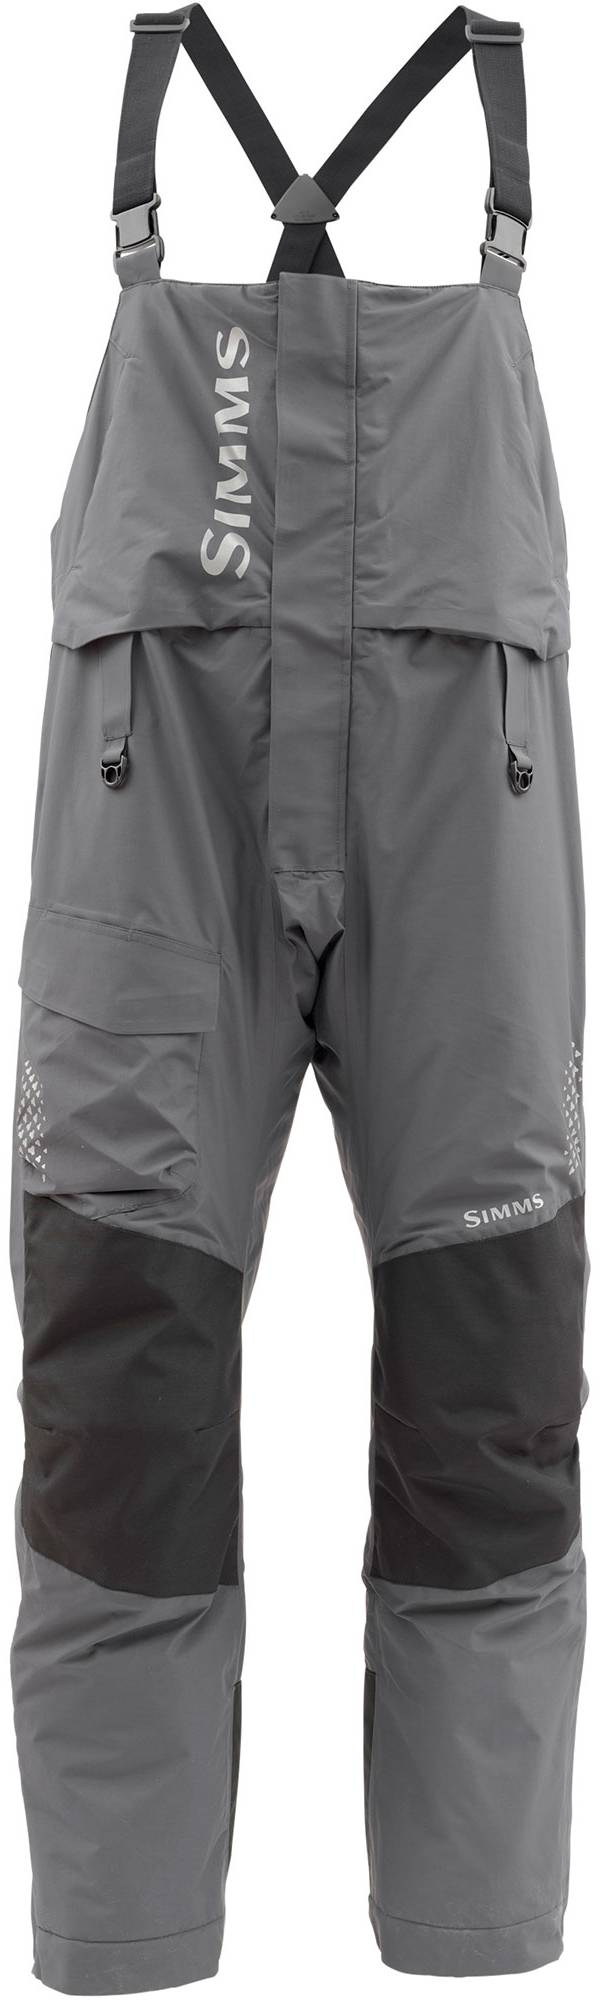 Simms Men's Challenger Insulated Bib product image